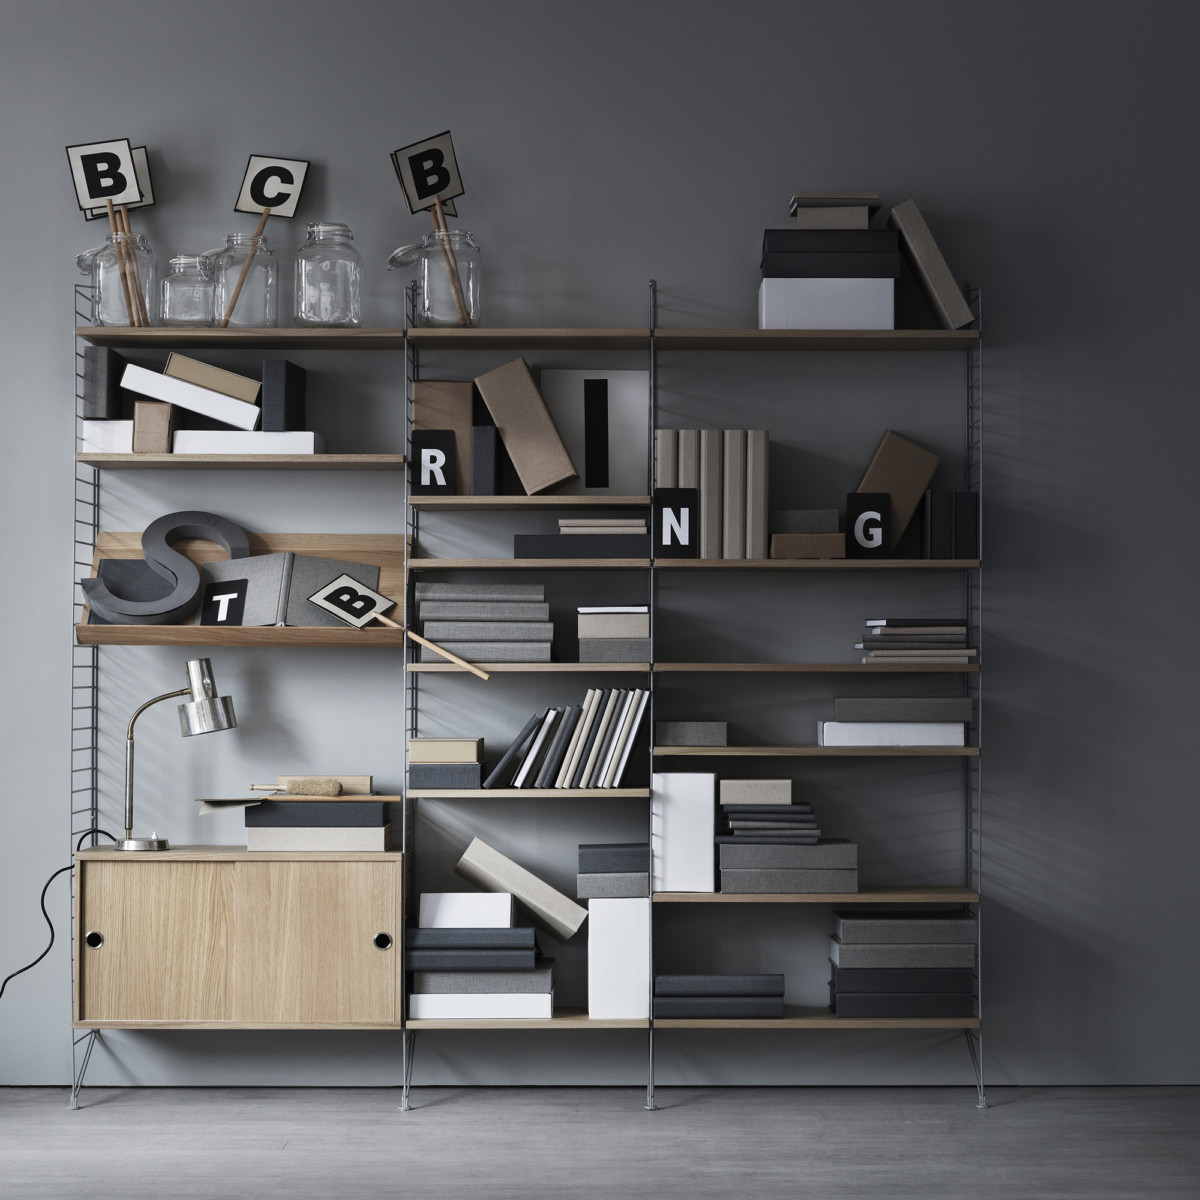 string system schrankmodul mit schiebet ren bei midmodern. Black Bedroom Furniture Sets. Home Design Ideas